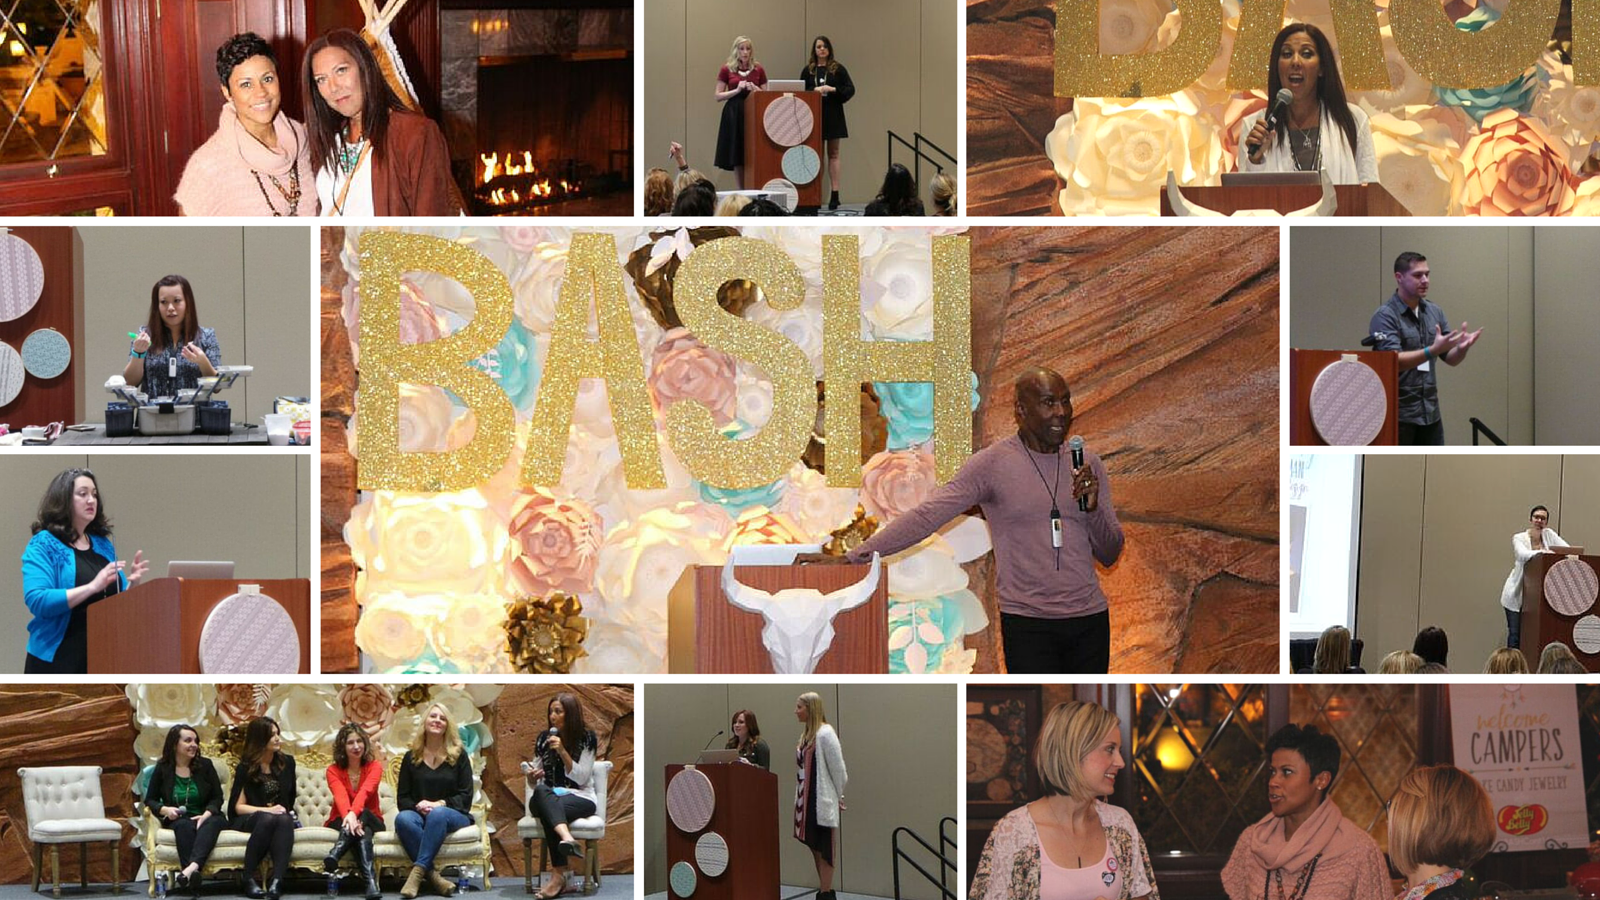 bash conference - best conferences for female creative entrepreneurs, event planners, party planners, bloggers, women in business